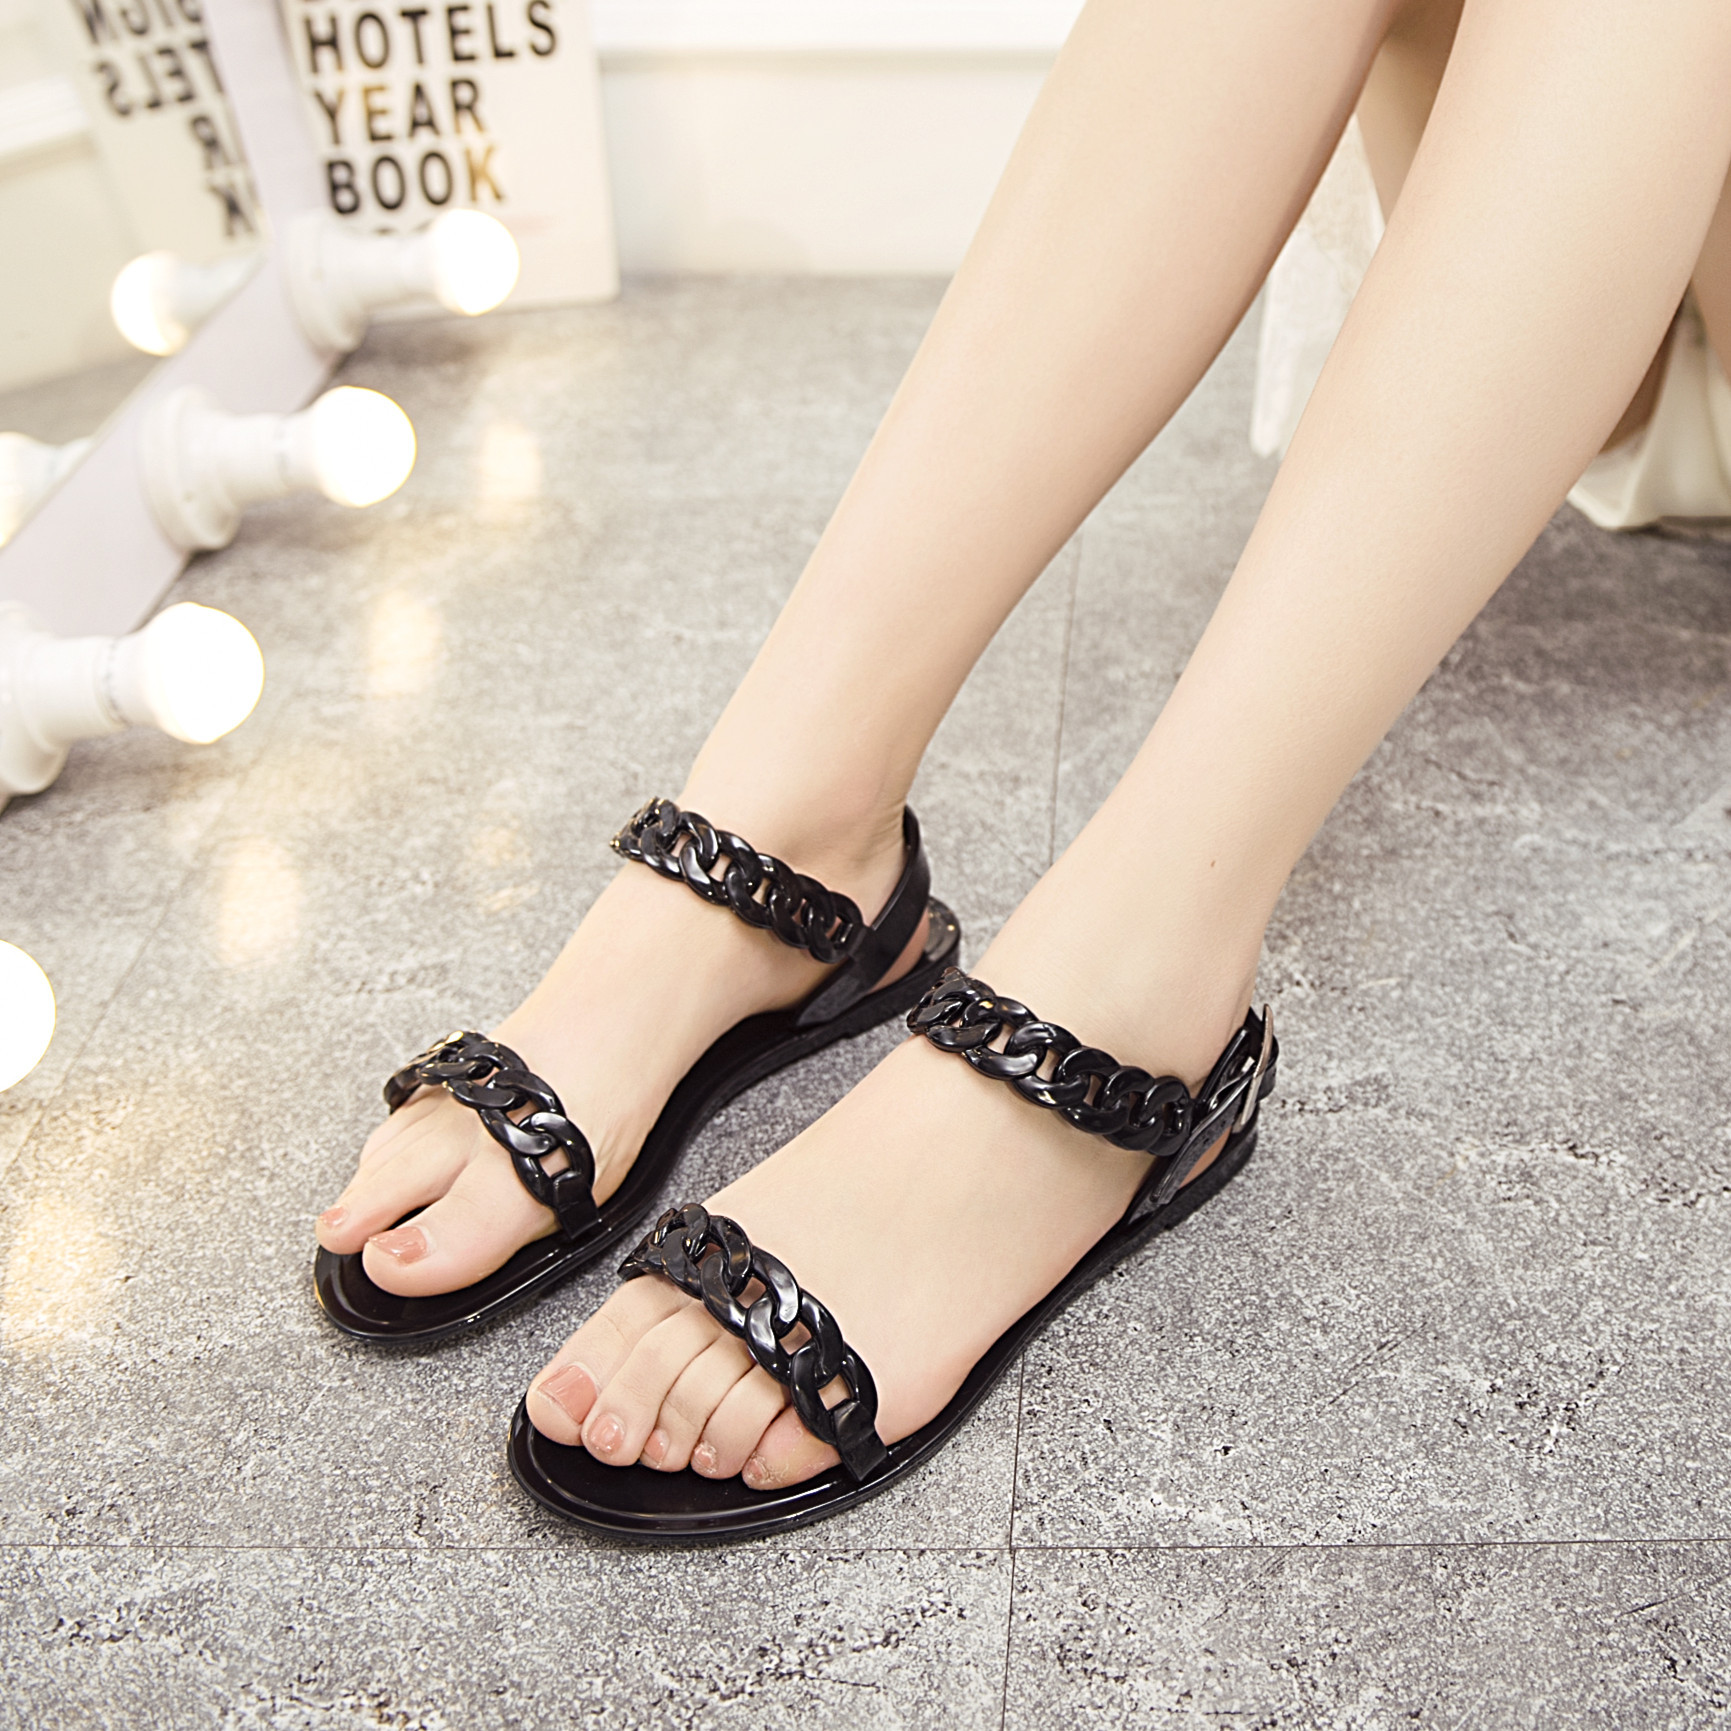 Sandals shoes comfortable - Summer Chains Womens Sandals Hollow Jelly Shoes Comfortable Flat Sandals Rome Popular Sandalias Mujer Buckle Solid